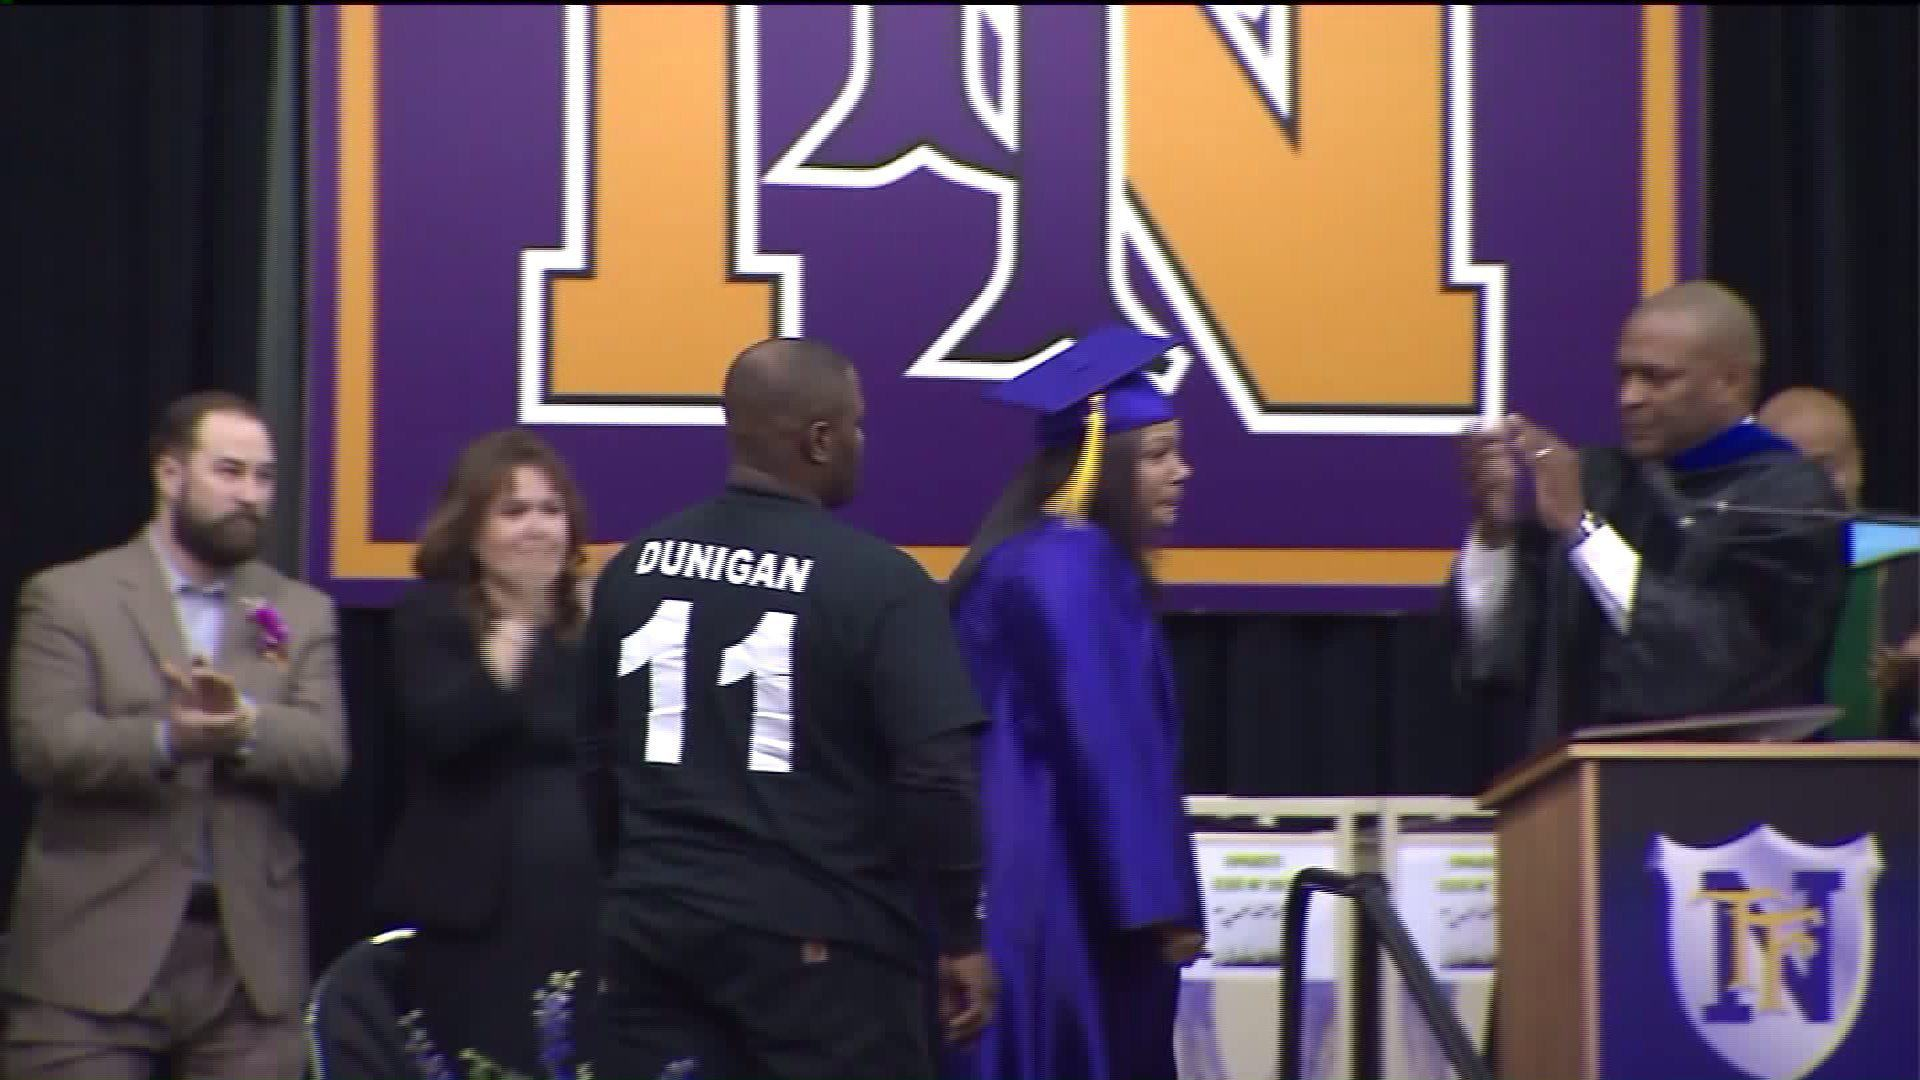 Mum Accepts Diploma For Dead Son, Its Seriously Emotional Stuff jackson1